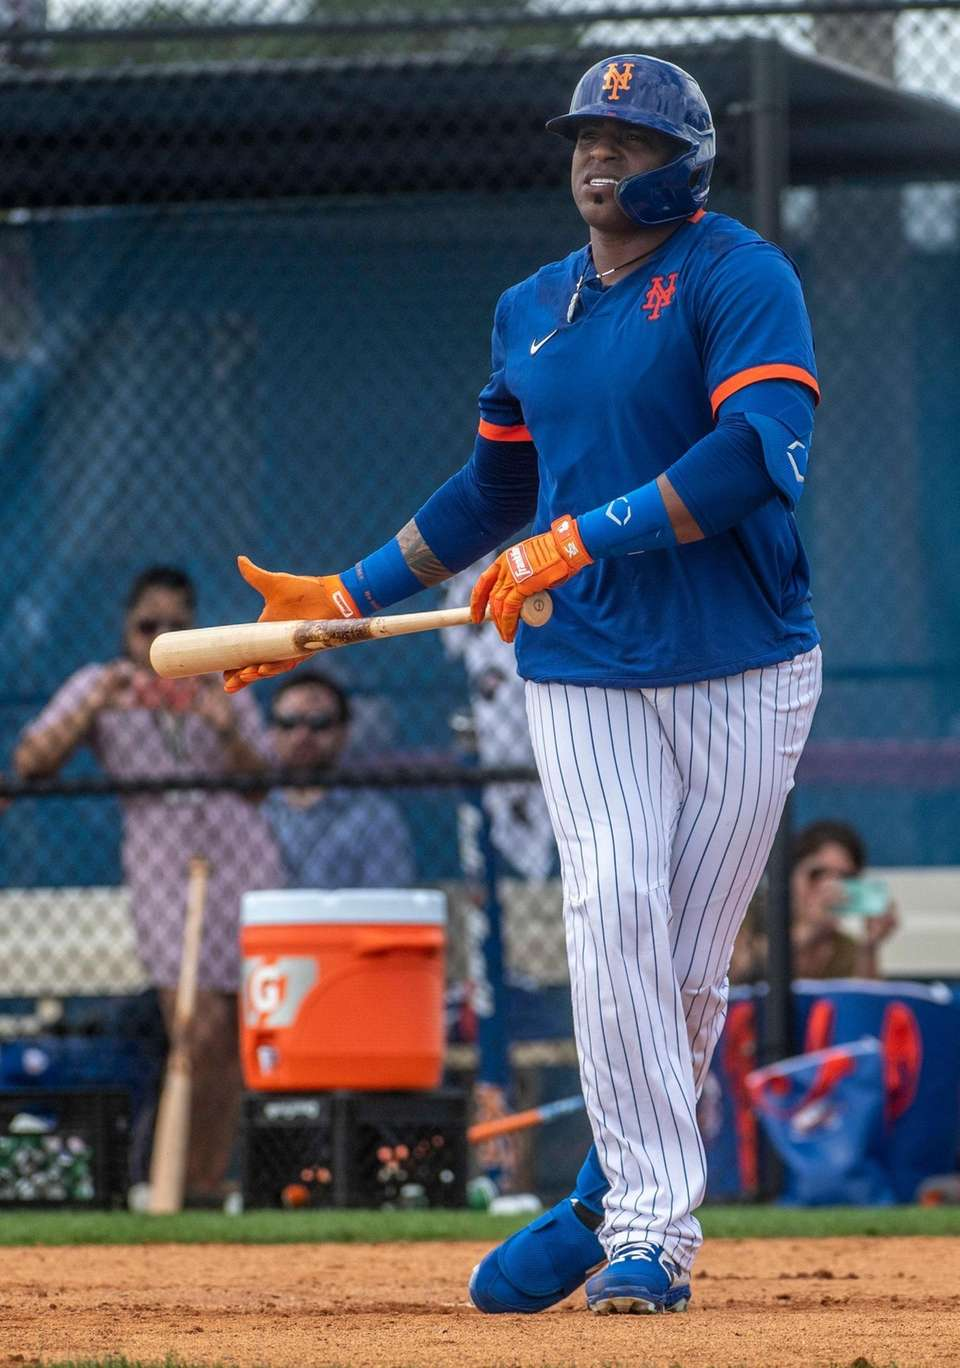 New York Mets outfielder Yoenis Cespedes takes on